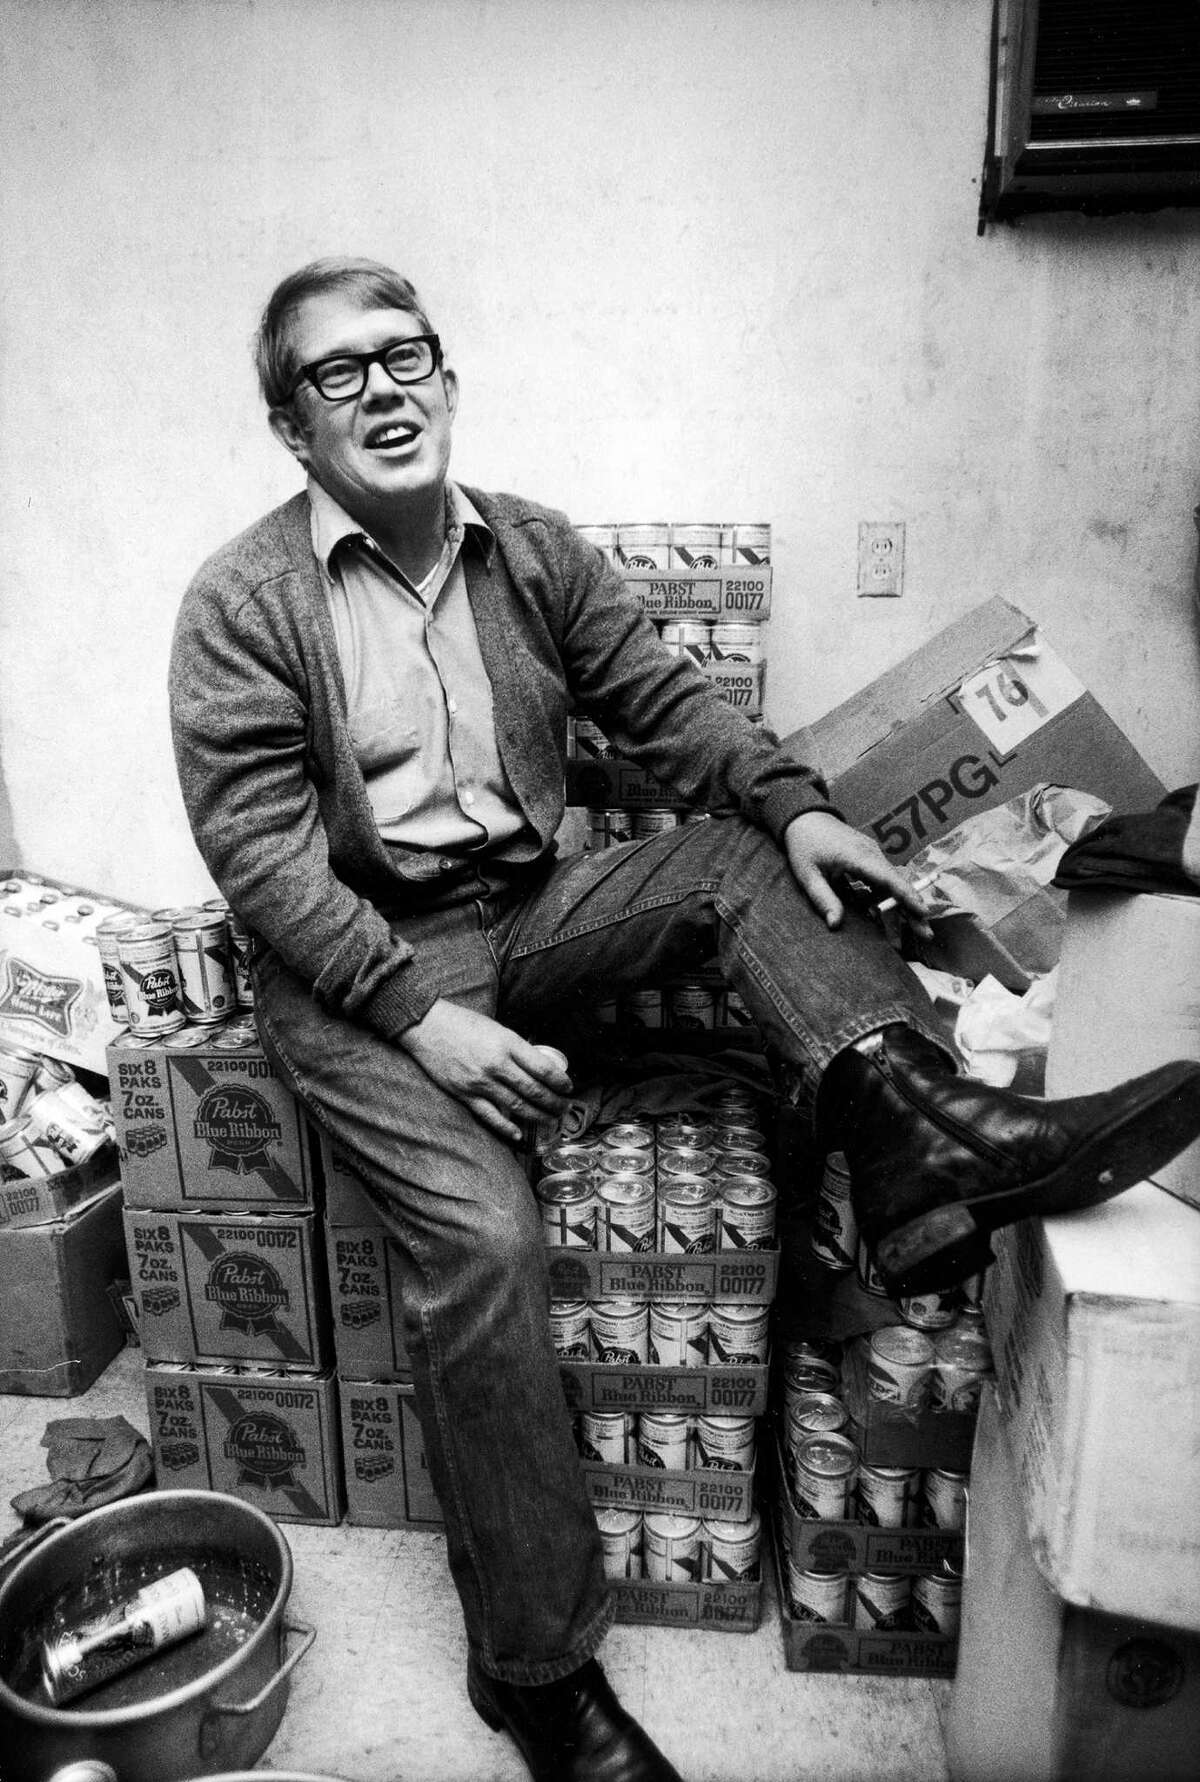 American entrepreneur Billy Carter (1924 - 1988) smokes and sits on a pile of boxes of Pabst Blue Ribbon beer in the back room of his gas station after his defeat in a mayoral election, Plains, Georgia, December 6, 1976. The younger brother of American President Jimmy Carter, Carter went on to produce his own beer brand.